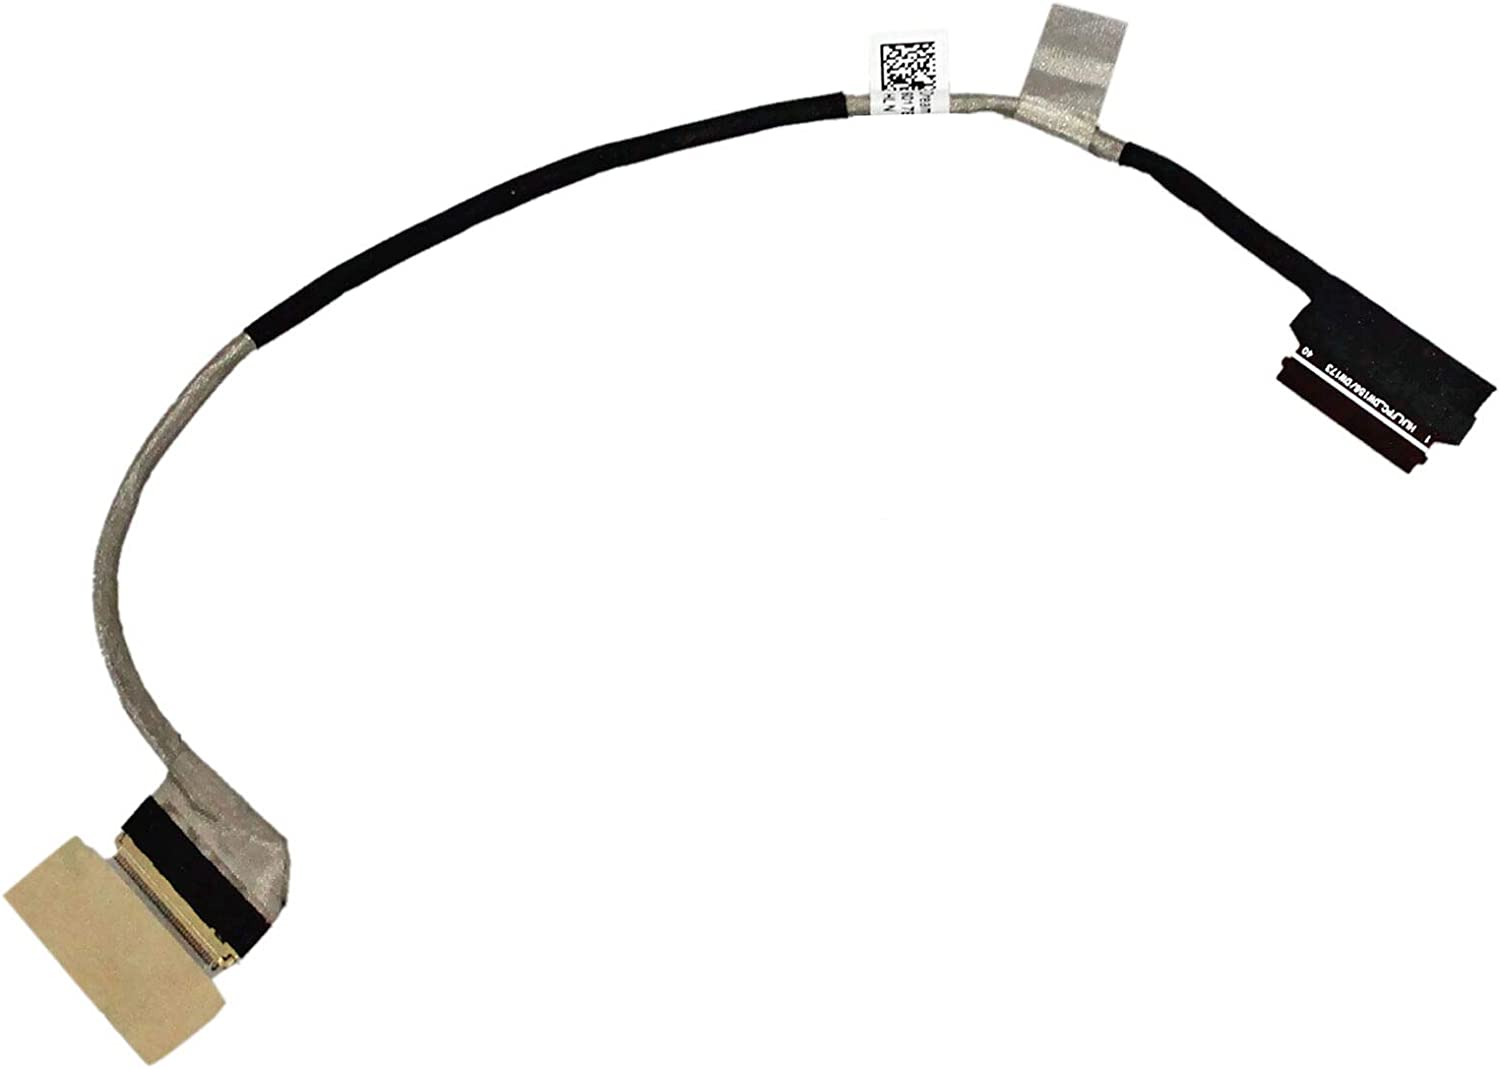 Airport WiFi Connect Cable Replacement for MacBook Pro A1286 Pa of 1